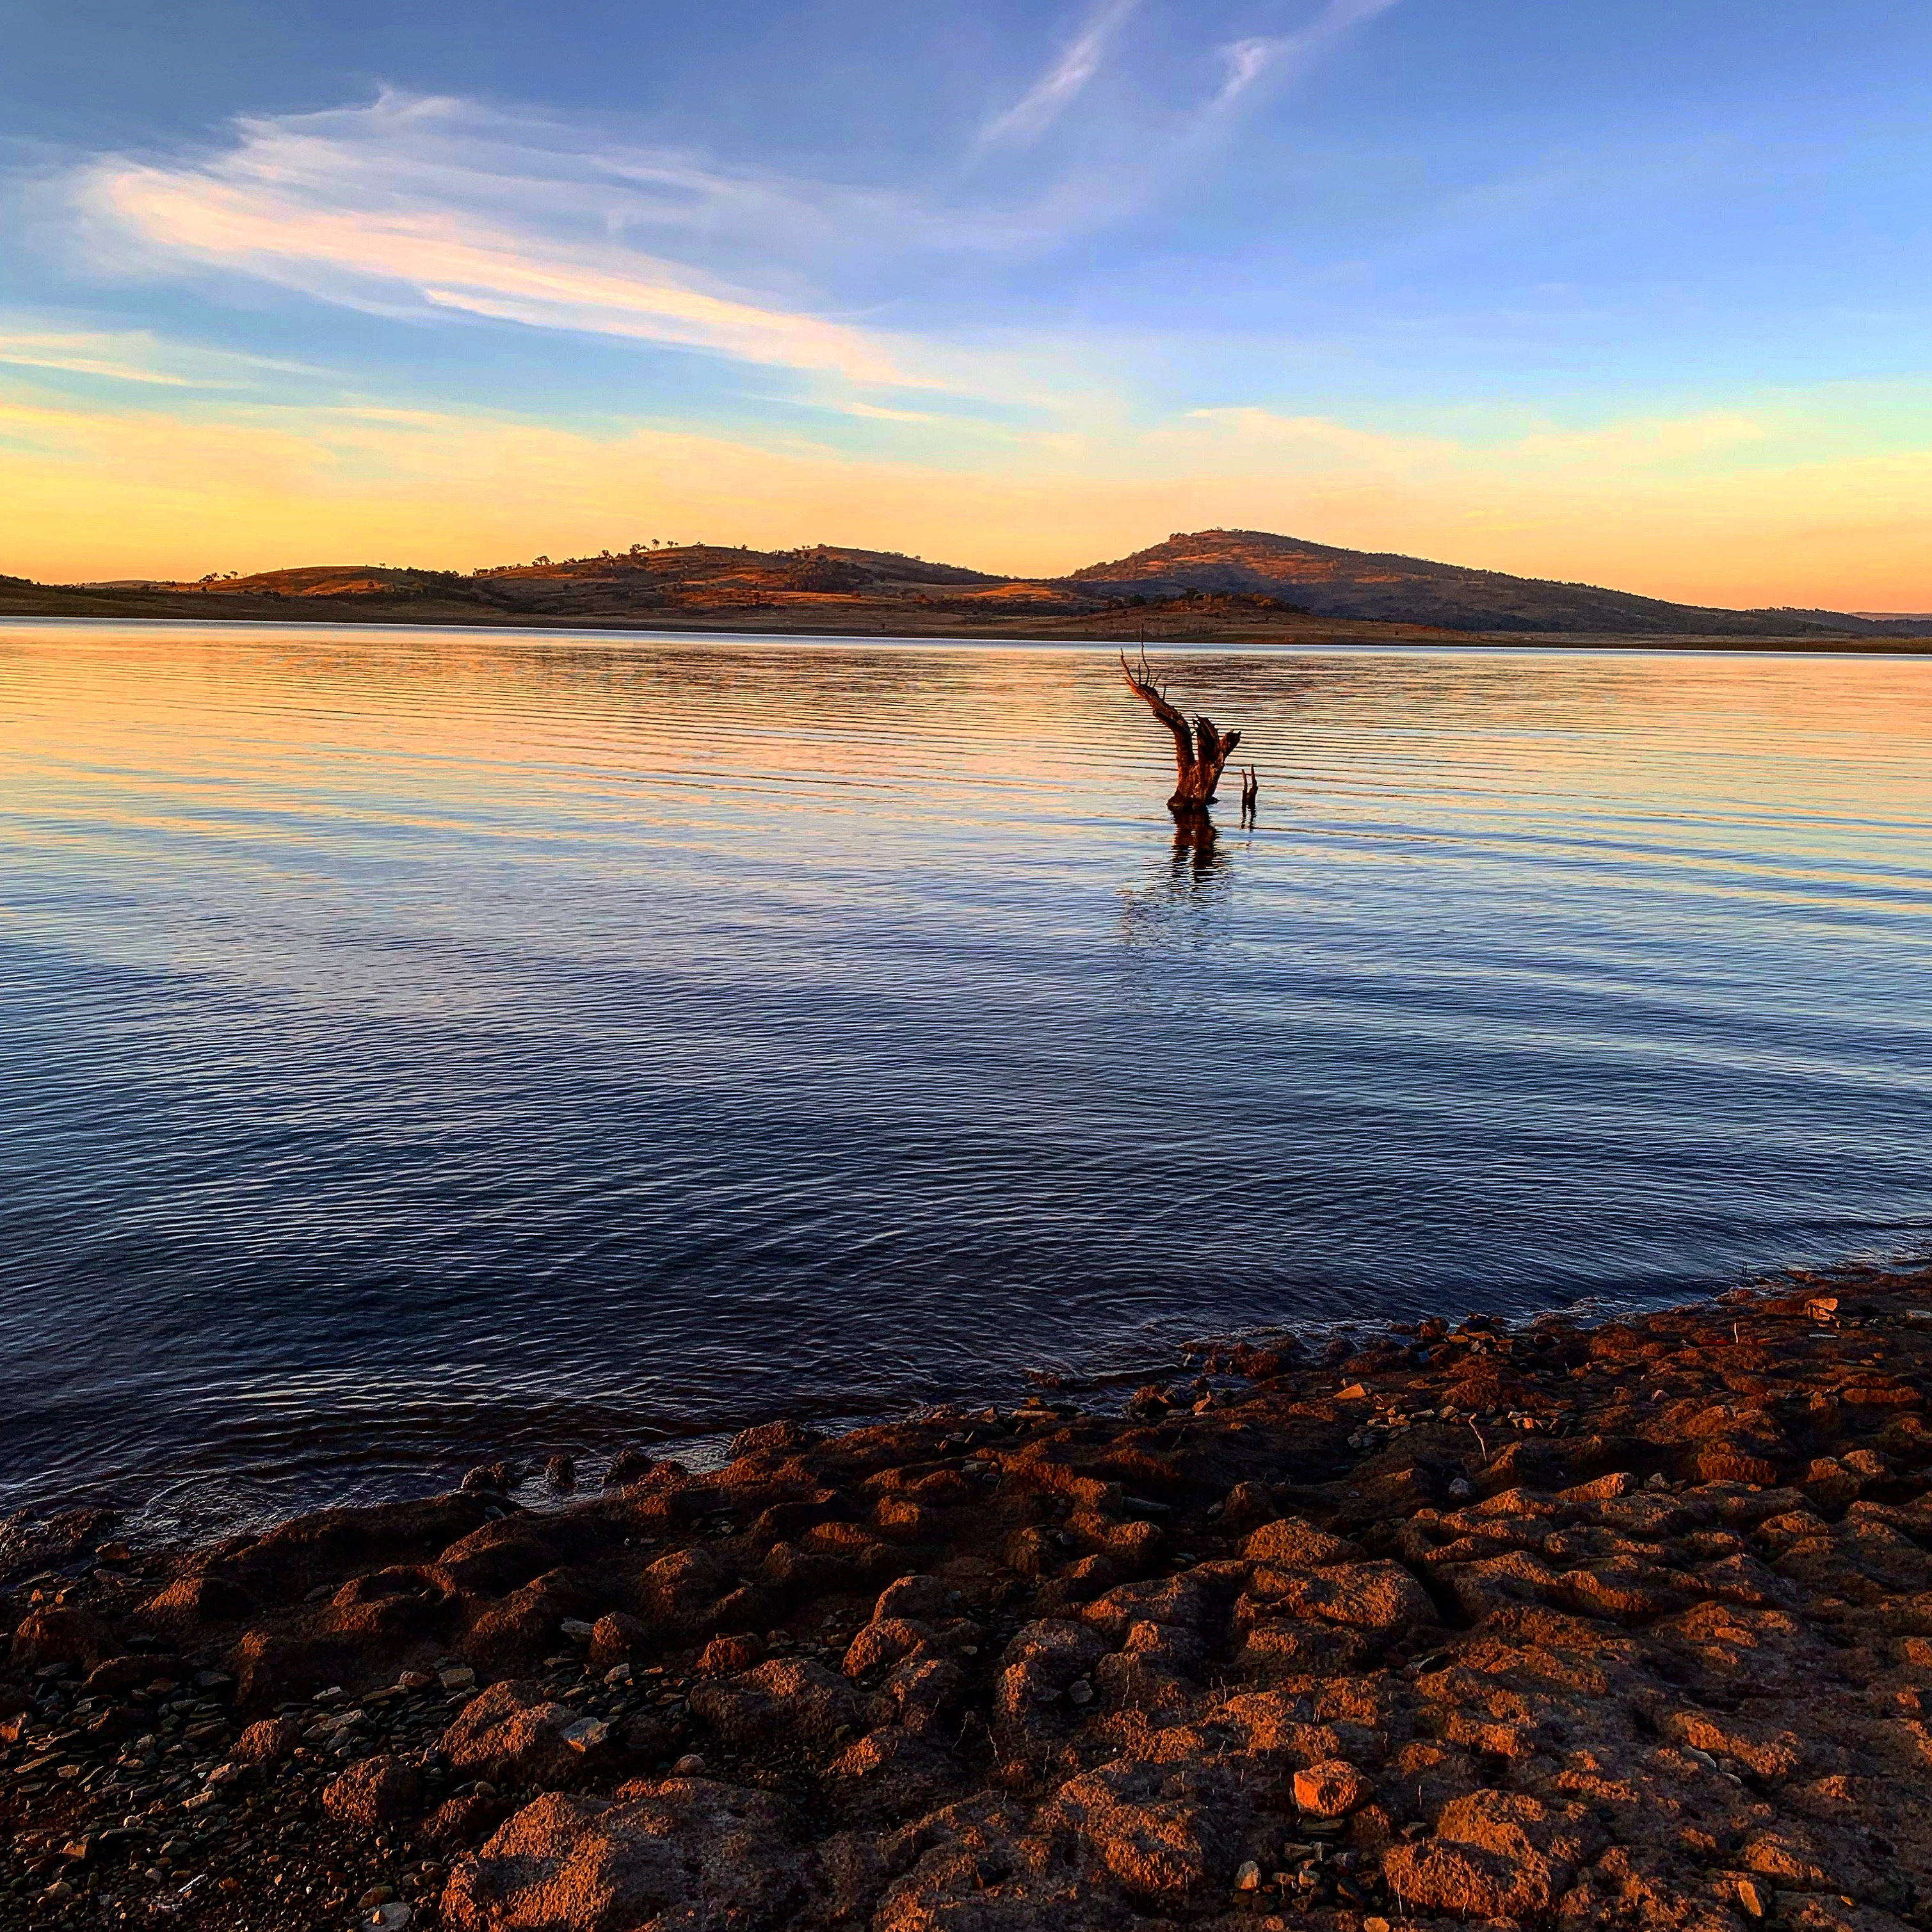 Sunrise at Trout Island - Lake Eucumbene